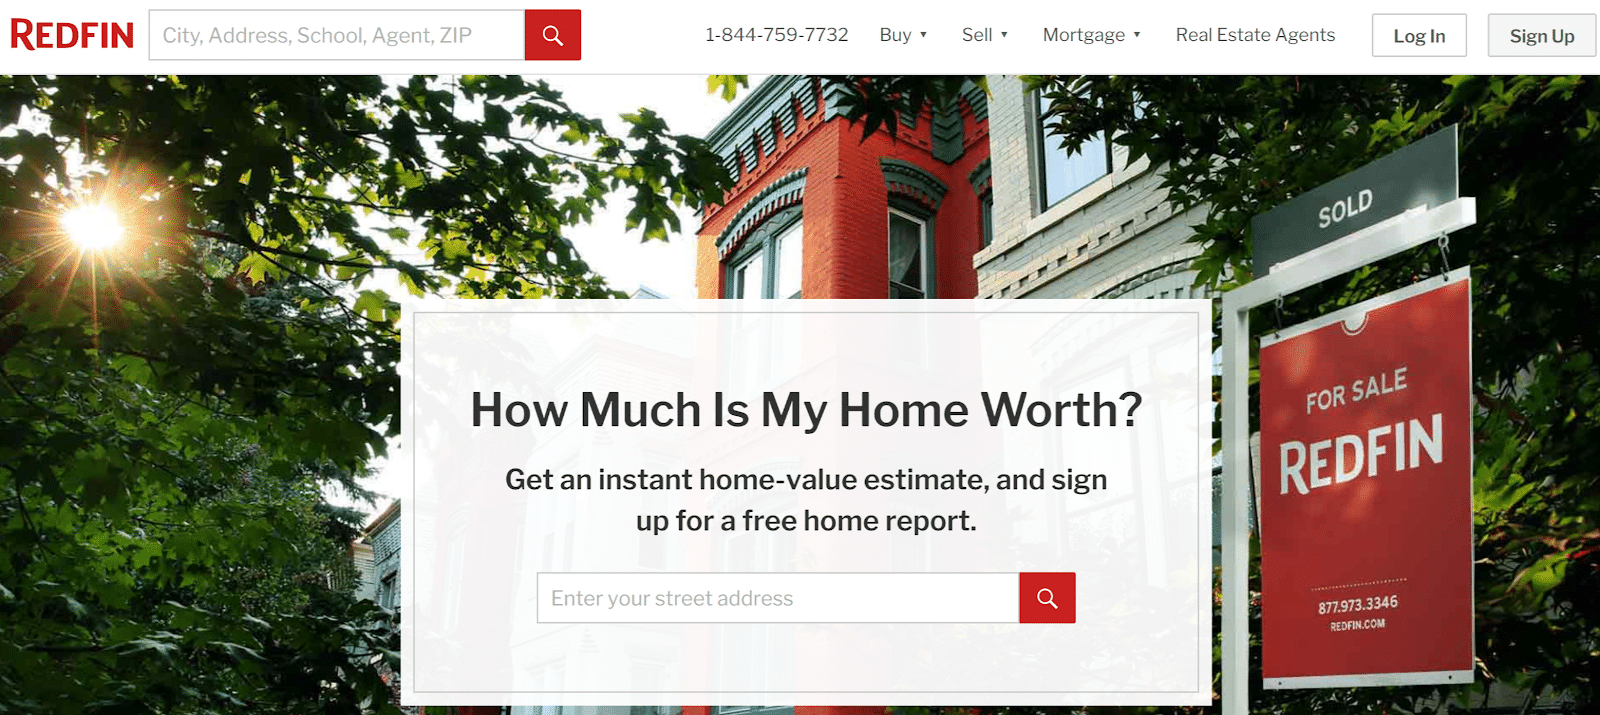 real estate landing page - redfin